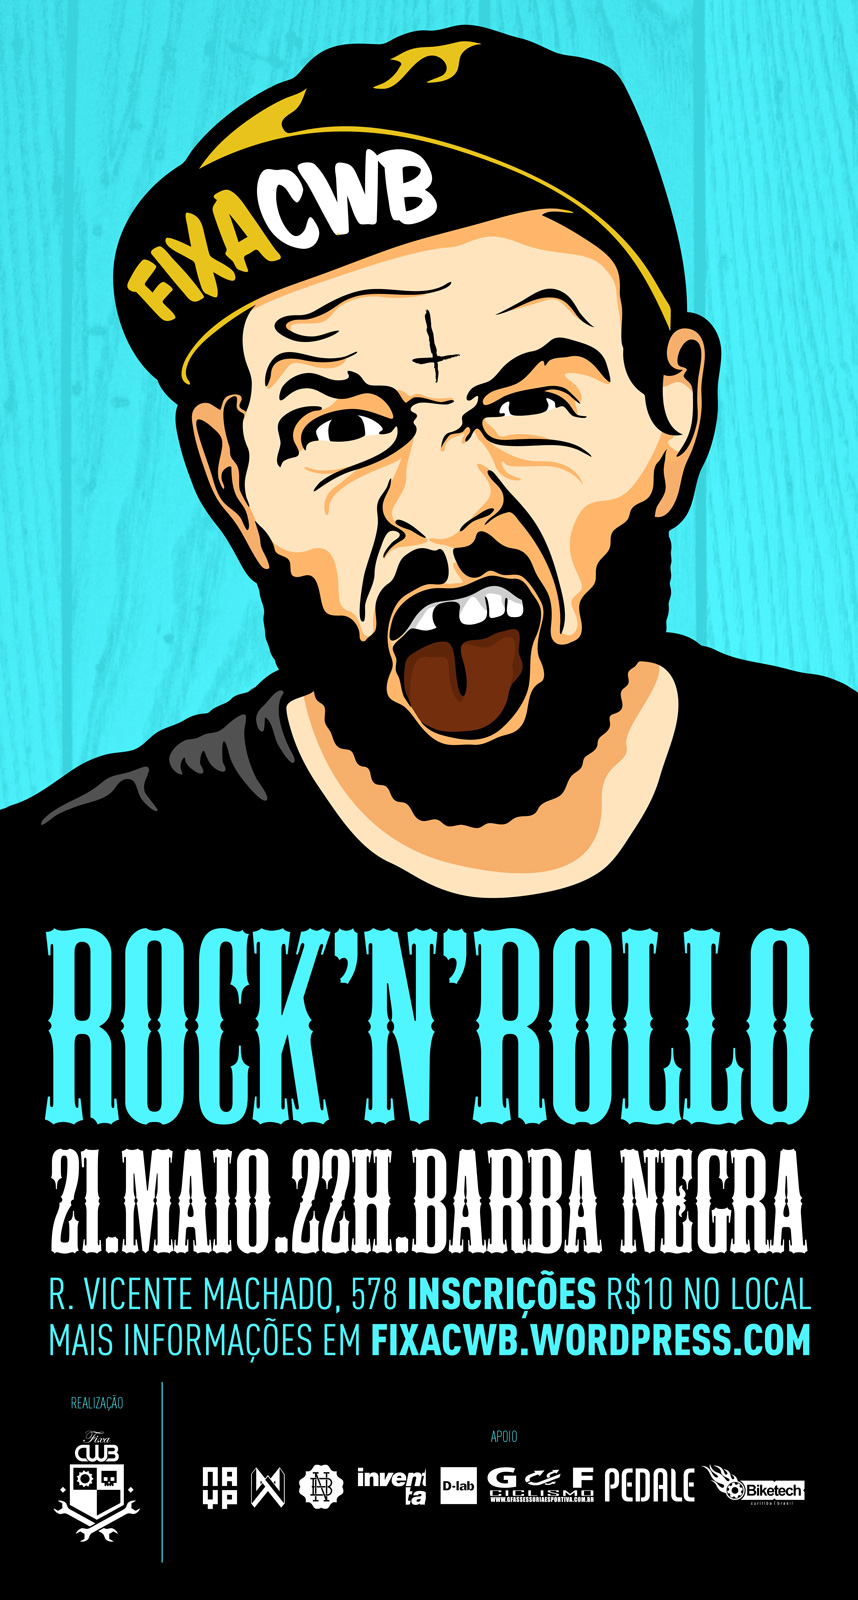 fixacwb rocknrollo cartaz Rock N Rollo